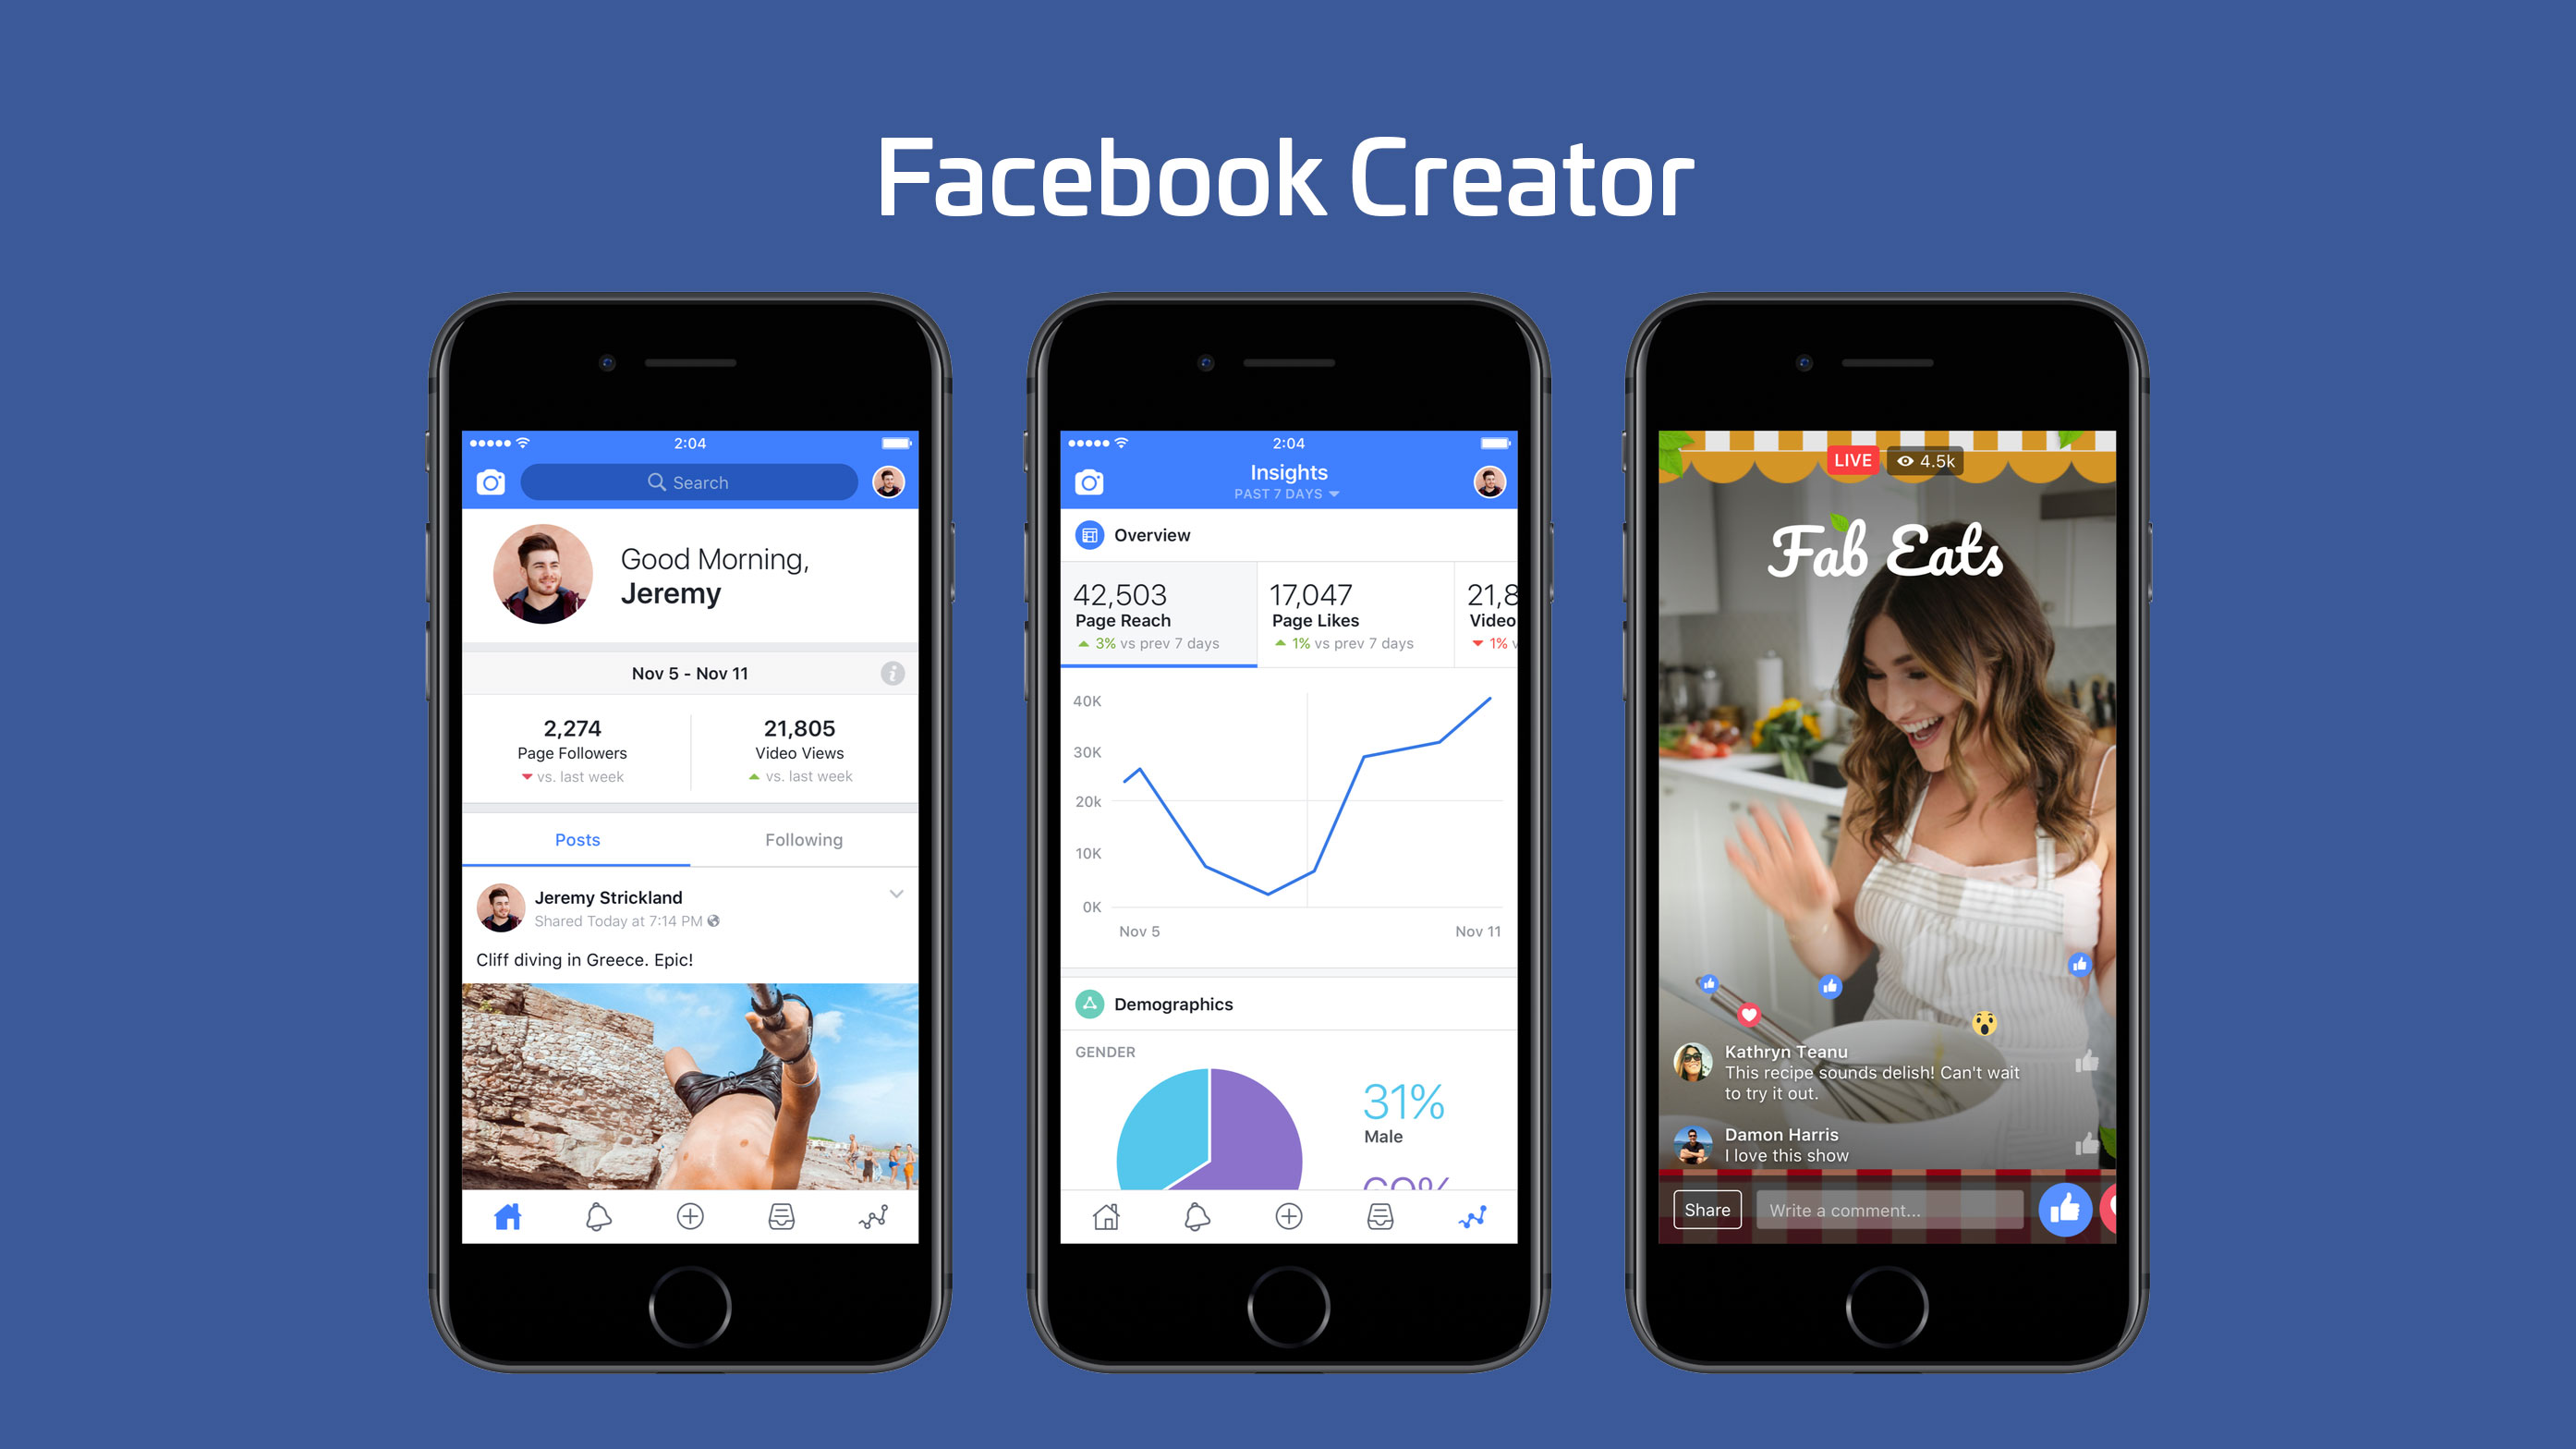 Facebook launches Creator app for influencers to build video